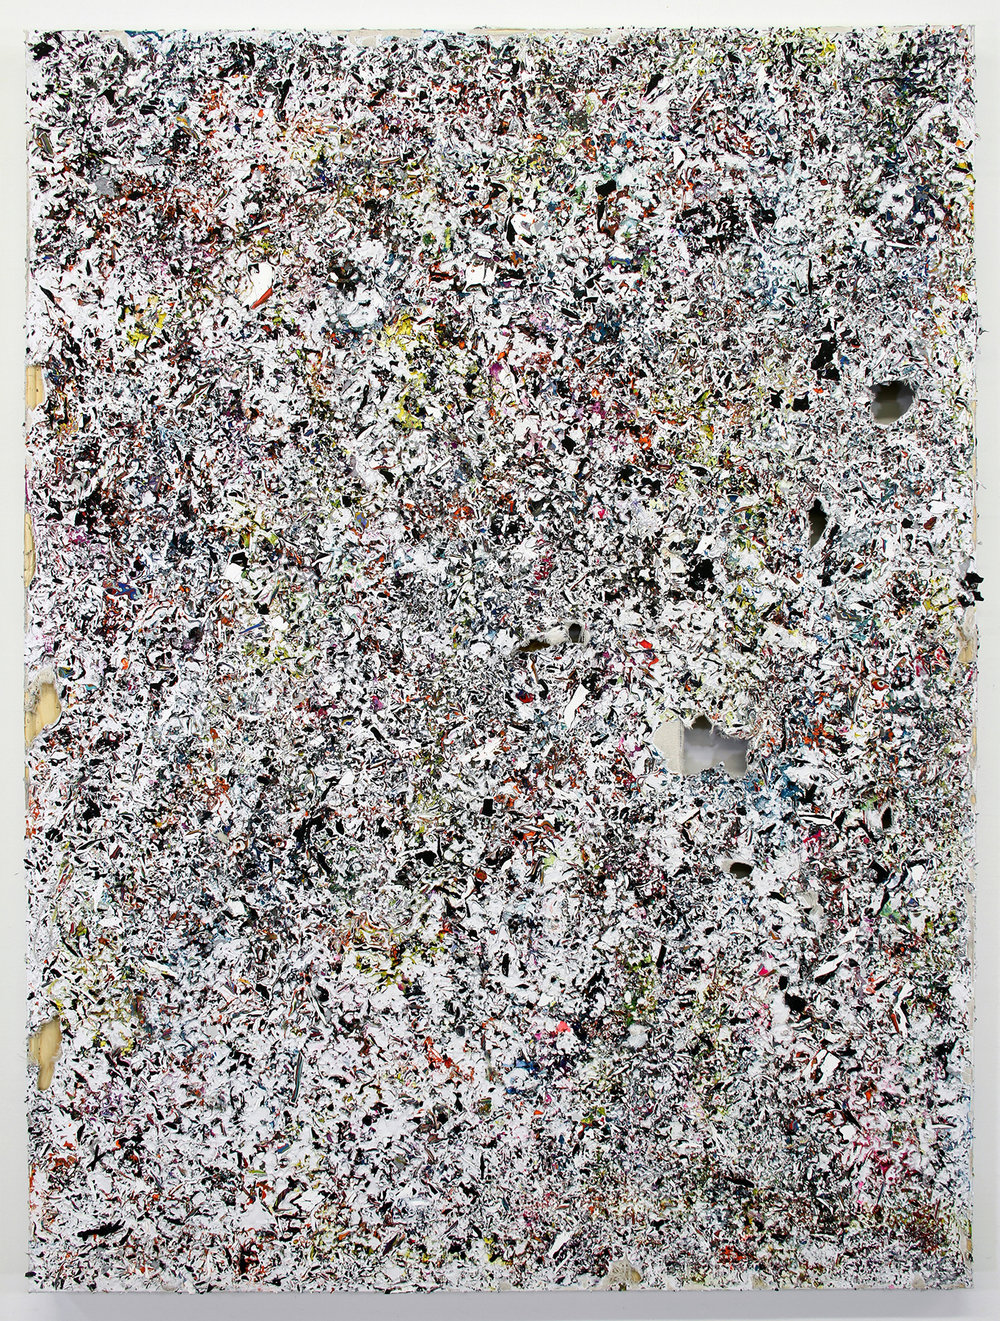 Shredded Painting 17